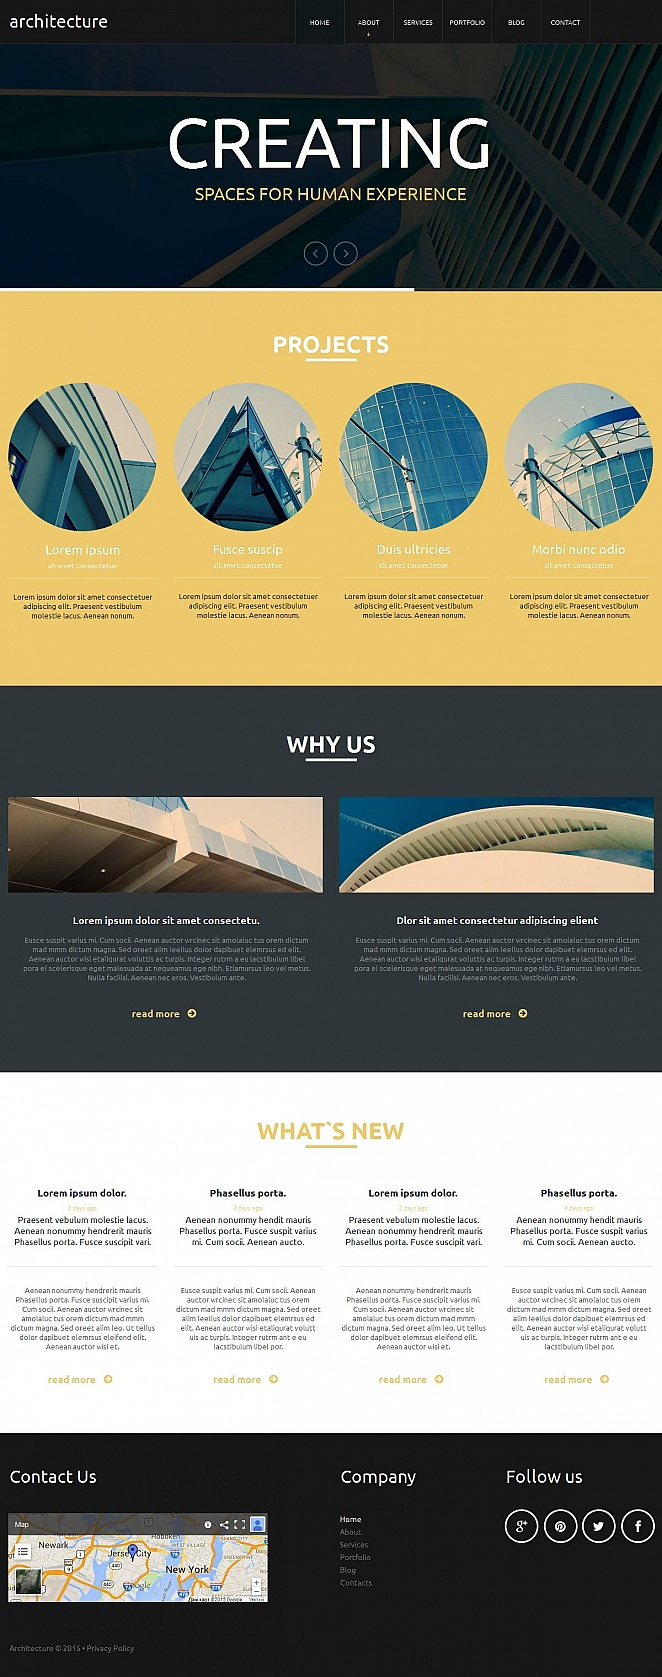 Flat Style Website Template for Architects - image